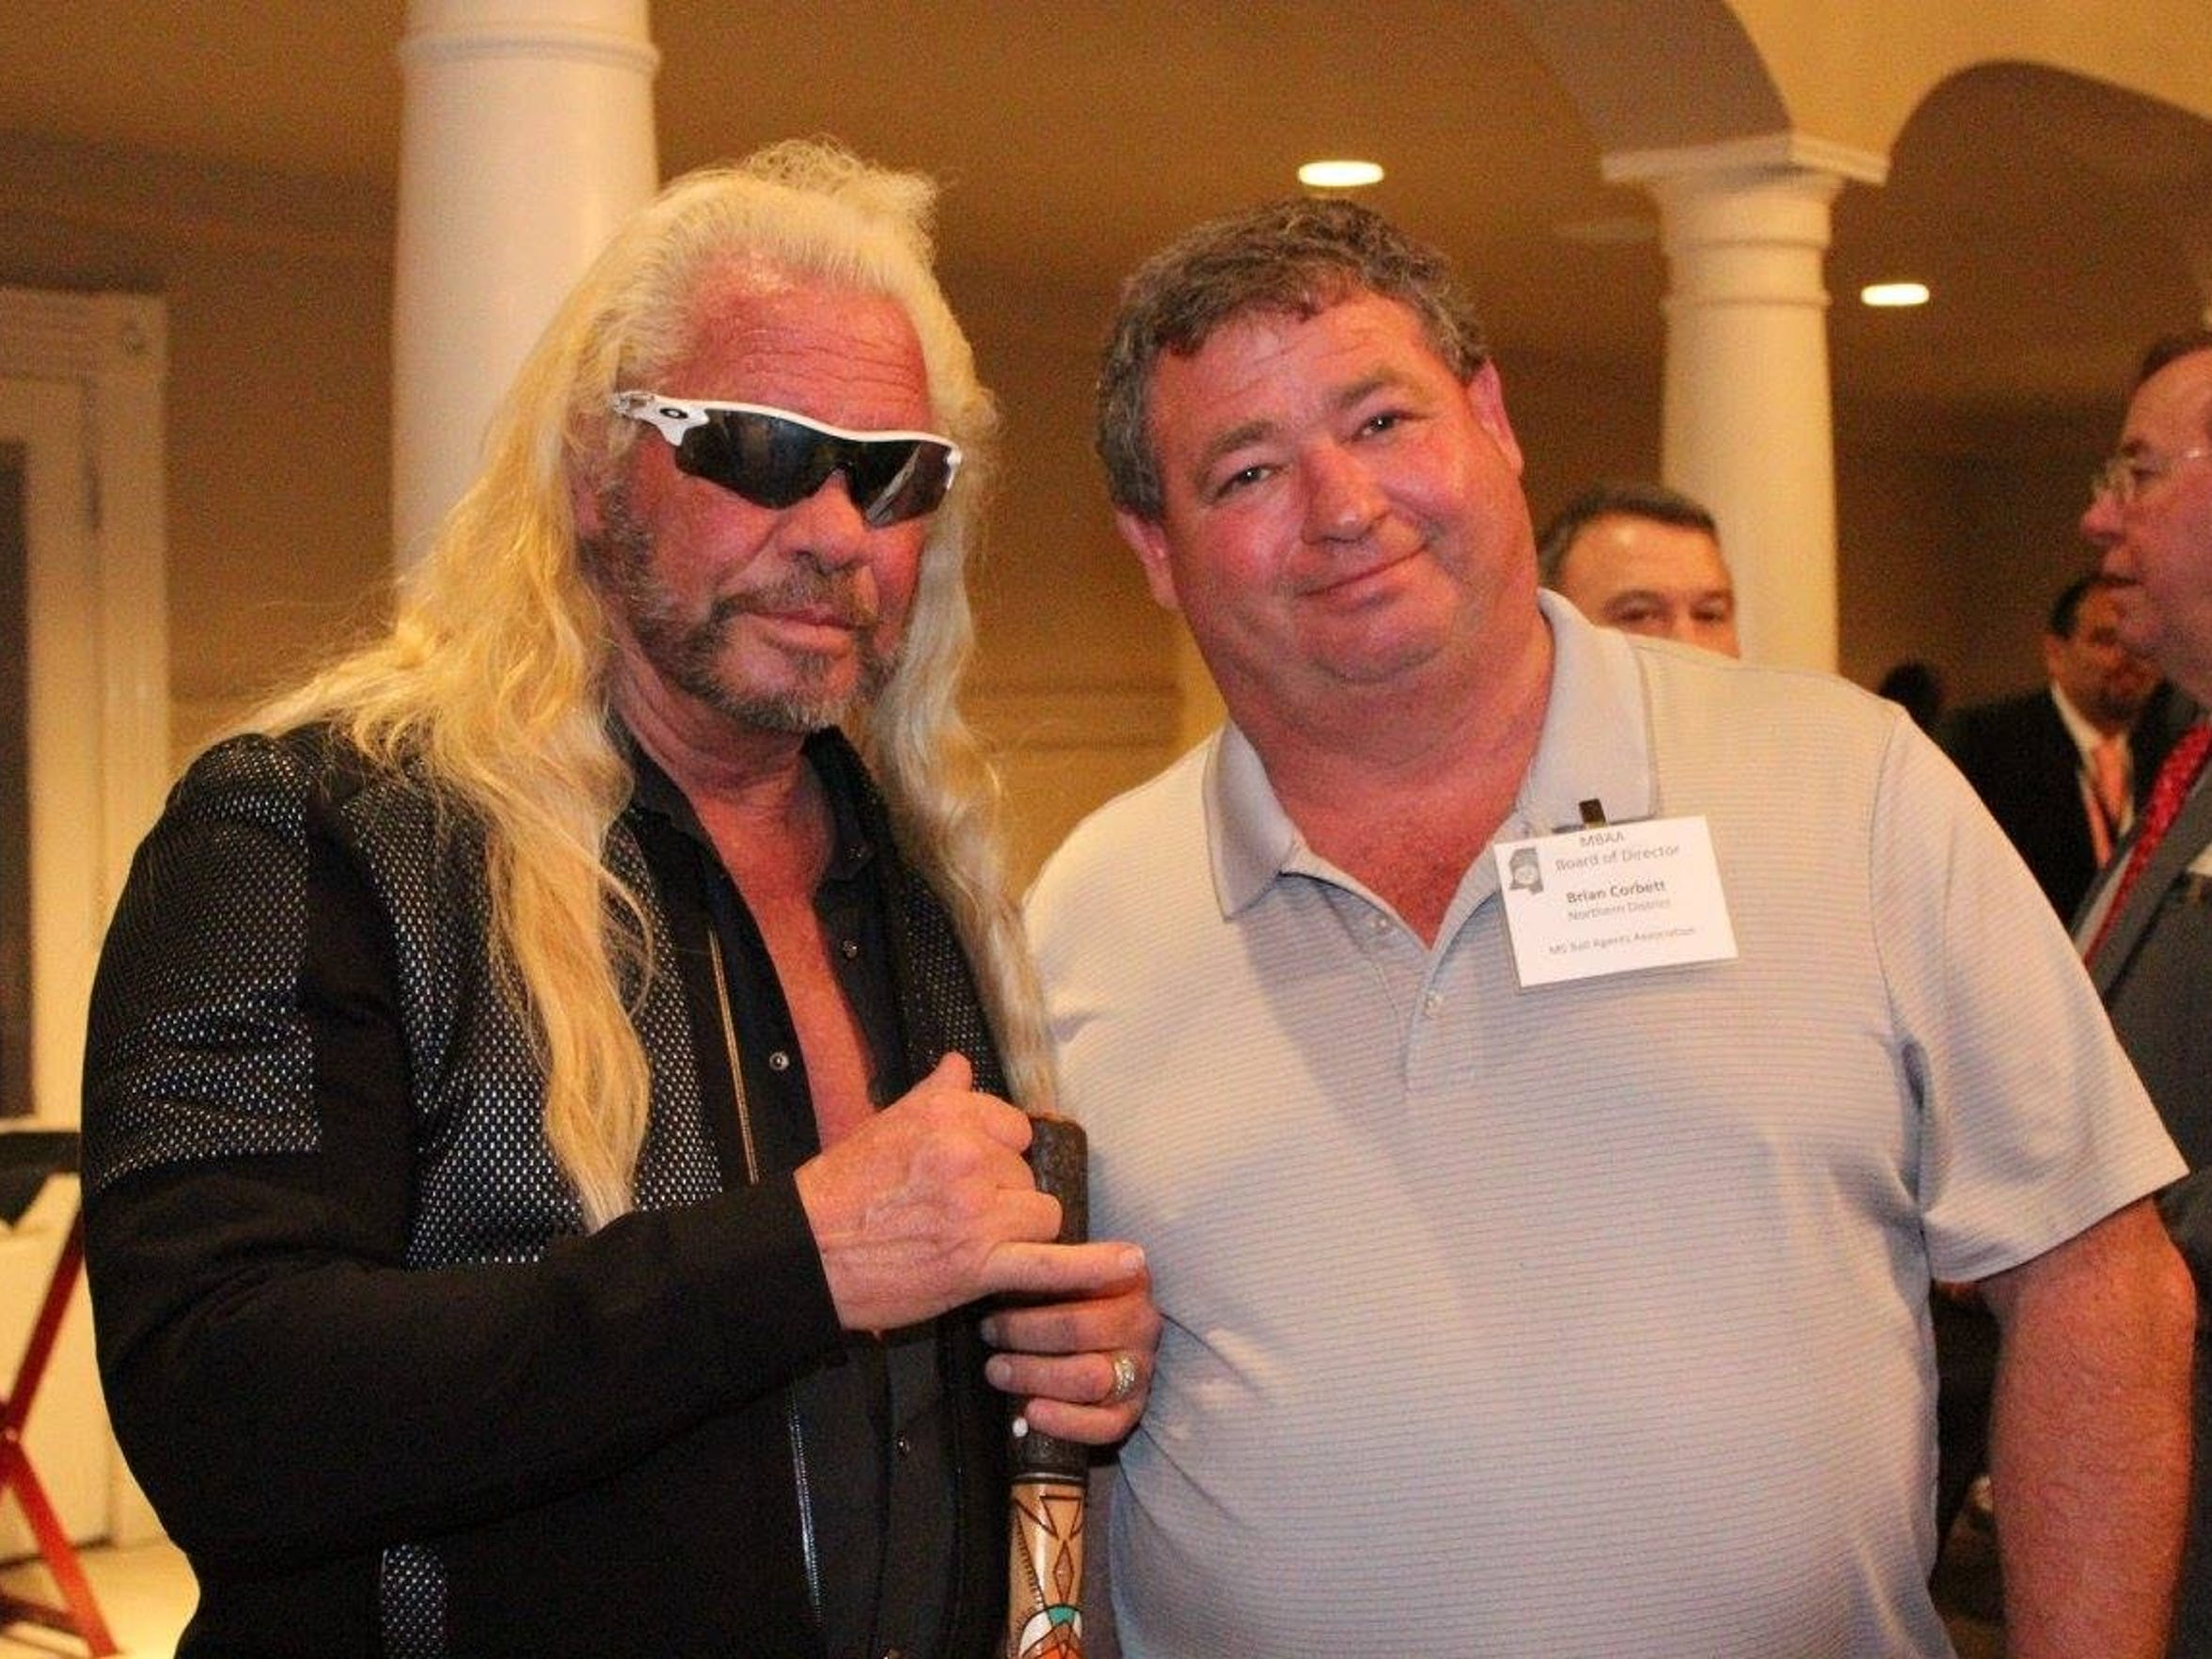 Brian Corbett, right, poses for a photo with Dog the Bounty Hunter. Corbett has 73 percent of the bail business in Lee County and 84 percent in neighboring Union County.